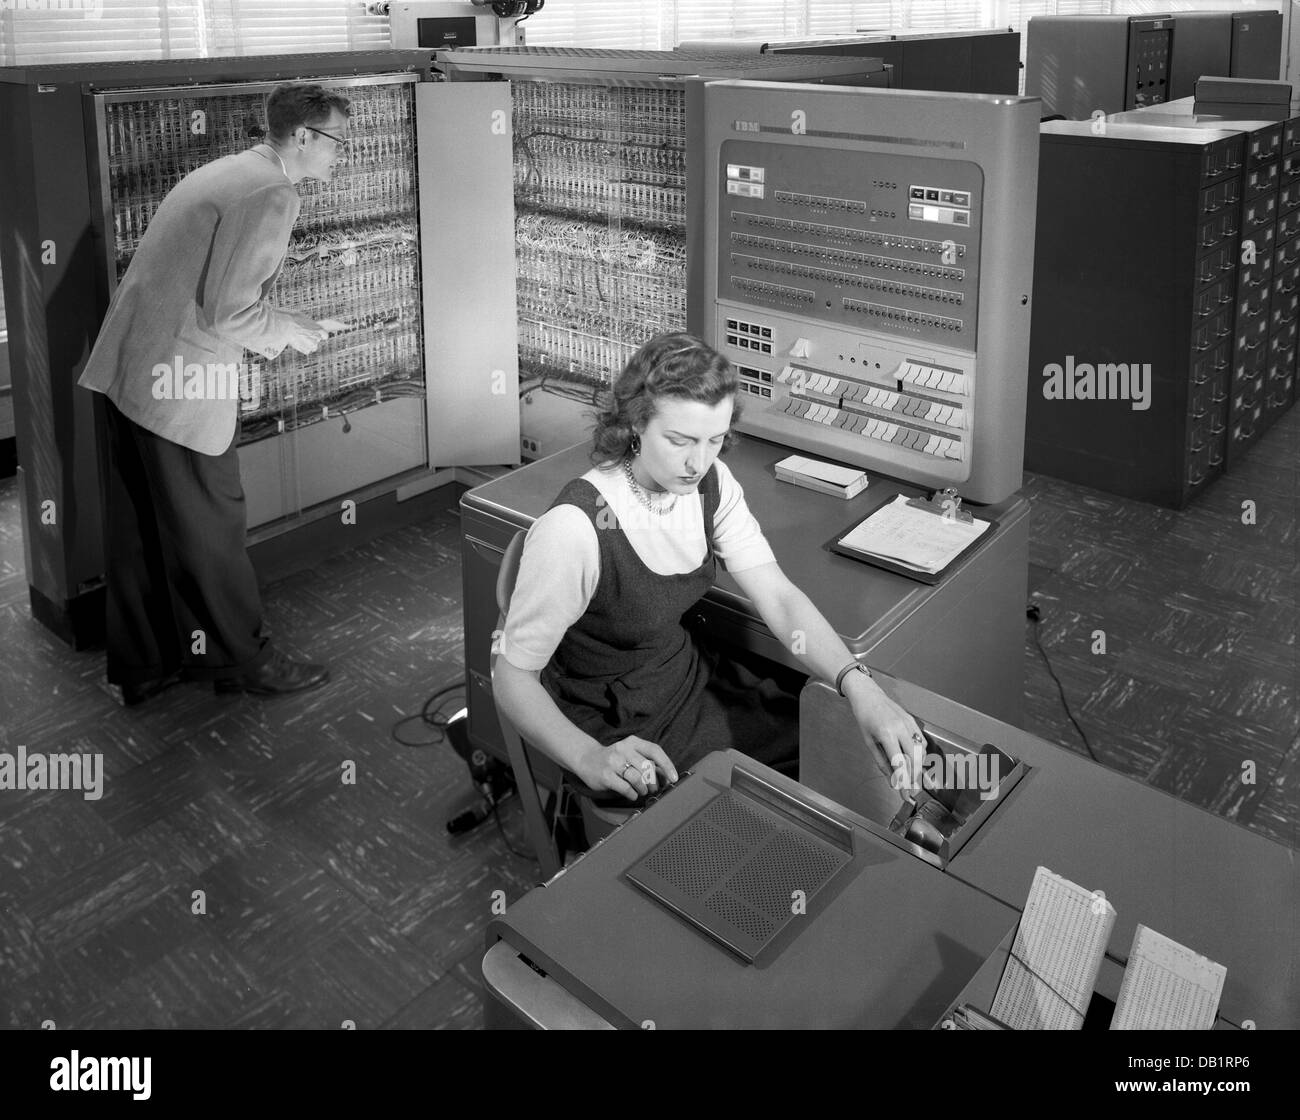 IBM TYPE 704 data processing machine  used by workers at US National Advisory Committee for Aeronautics in 1957 - Stock Image